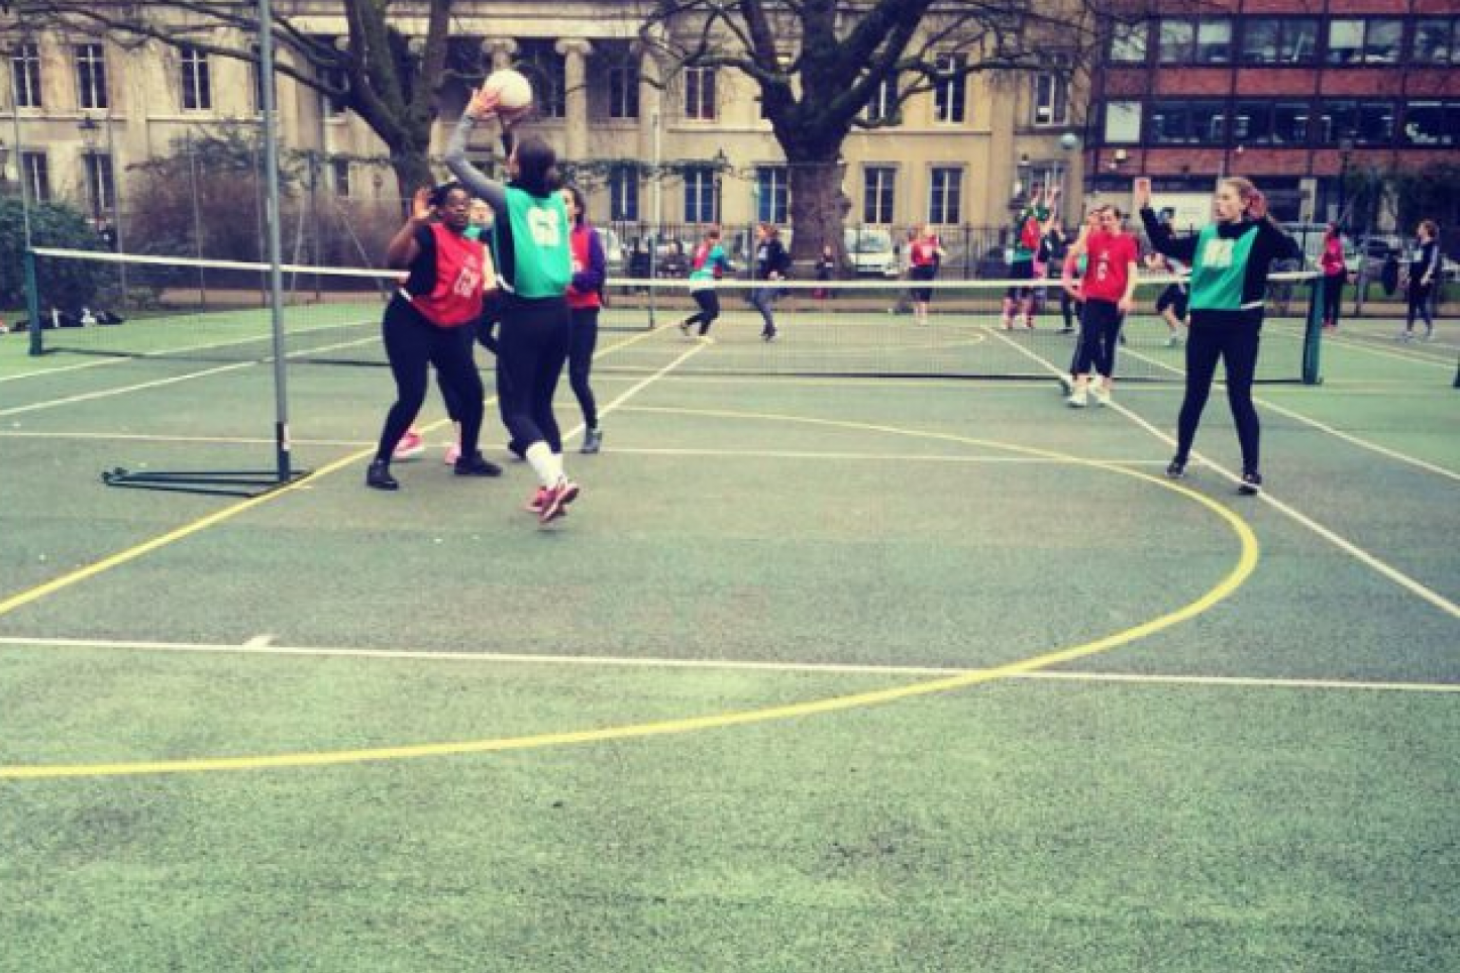 Lincoln's Inn Fields Outdoor | Hard (macadam) netball court